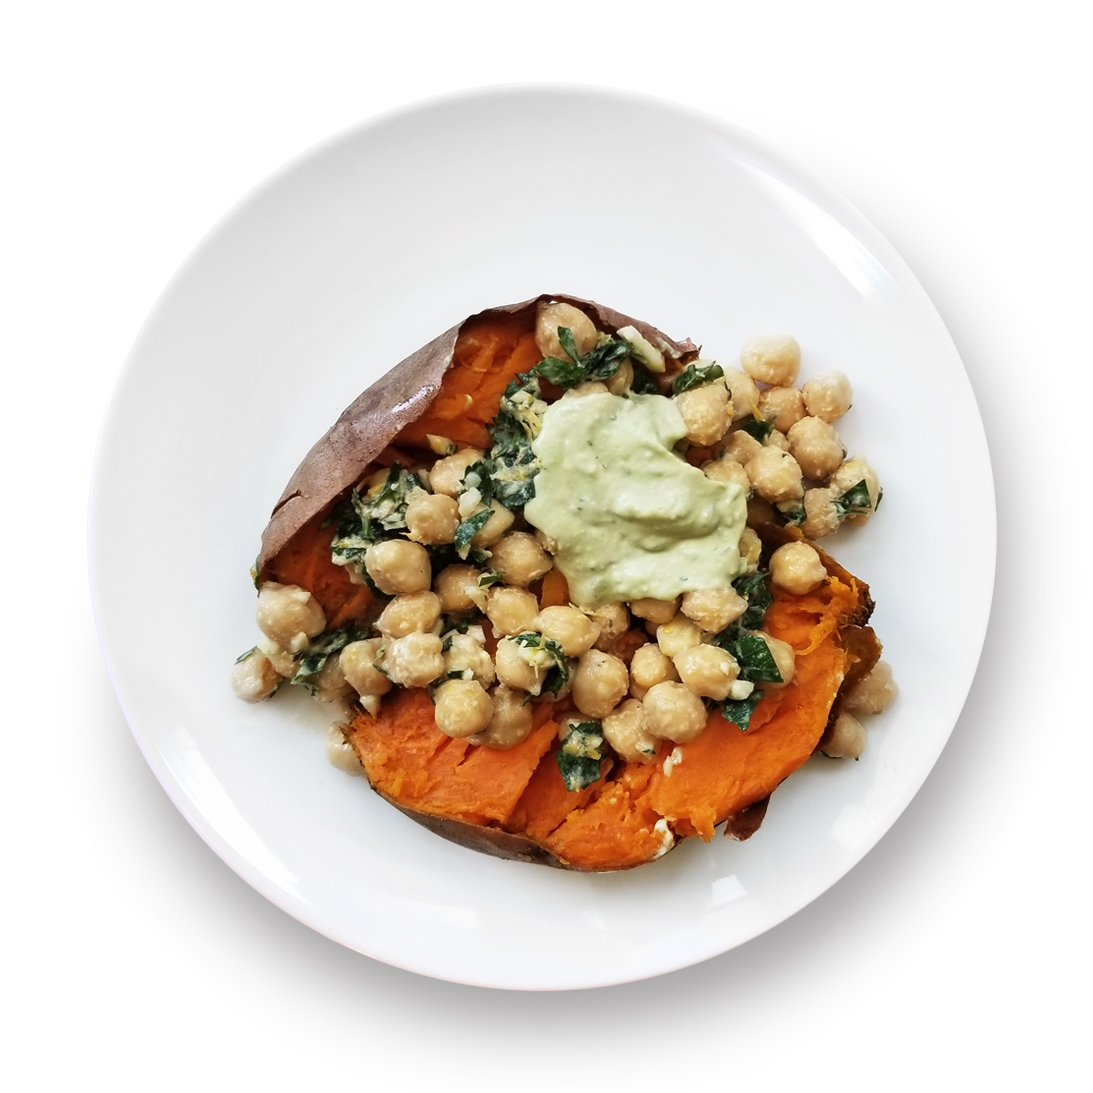 Baked sweet potatoes with lemon herbed chickpeas and tahini whip in a bowl.